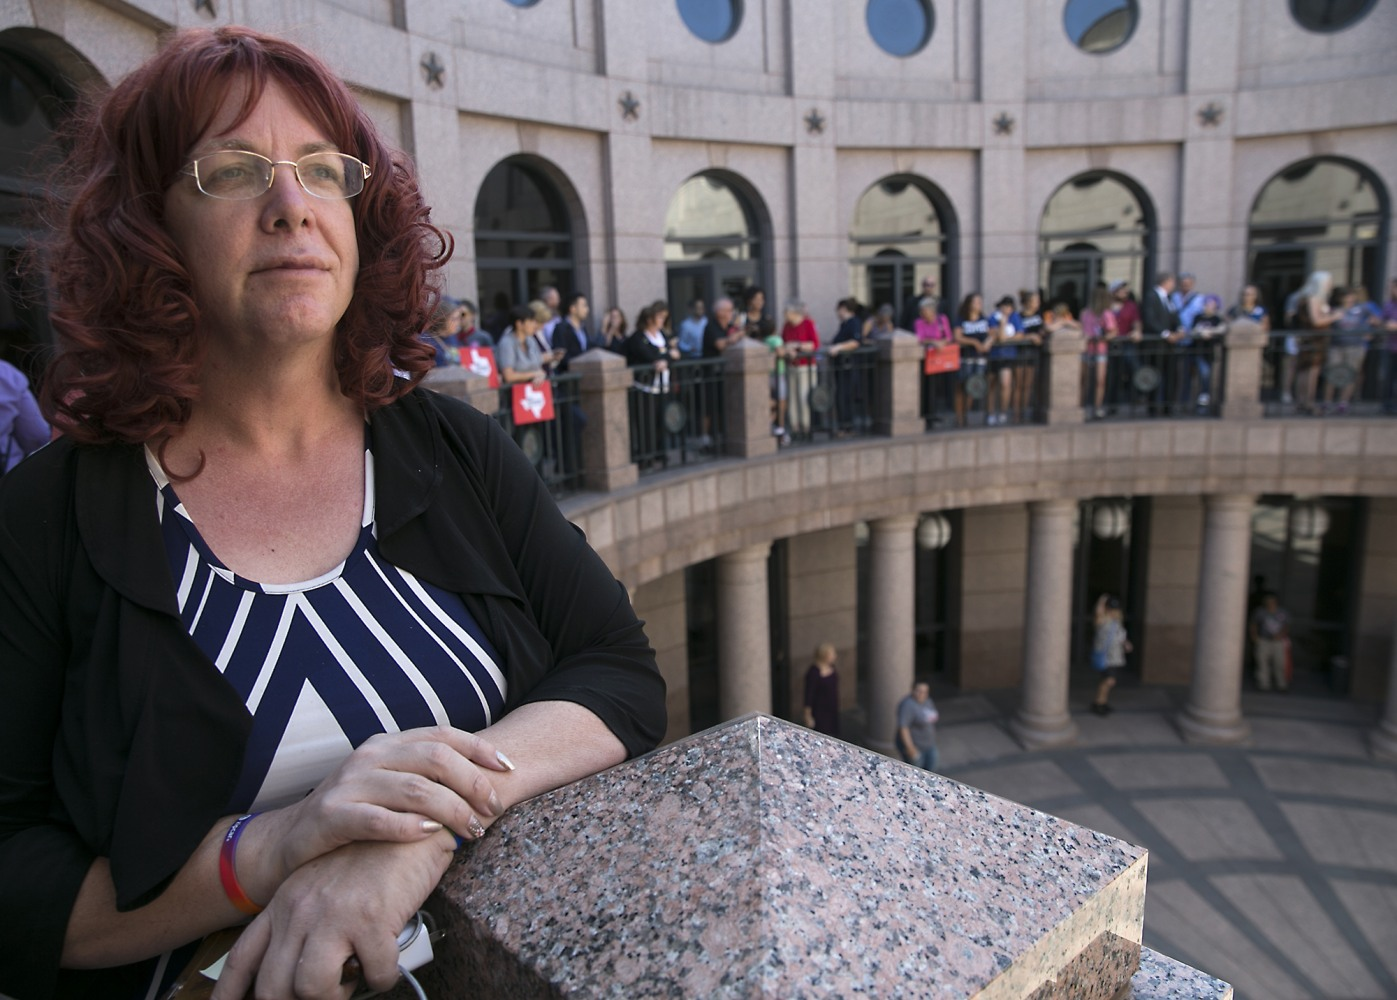 Texas Trans Bathroom Bill Passes After Hours of Oppositional Testimony